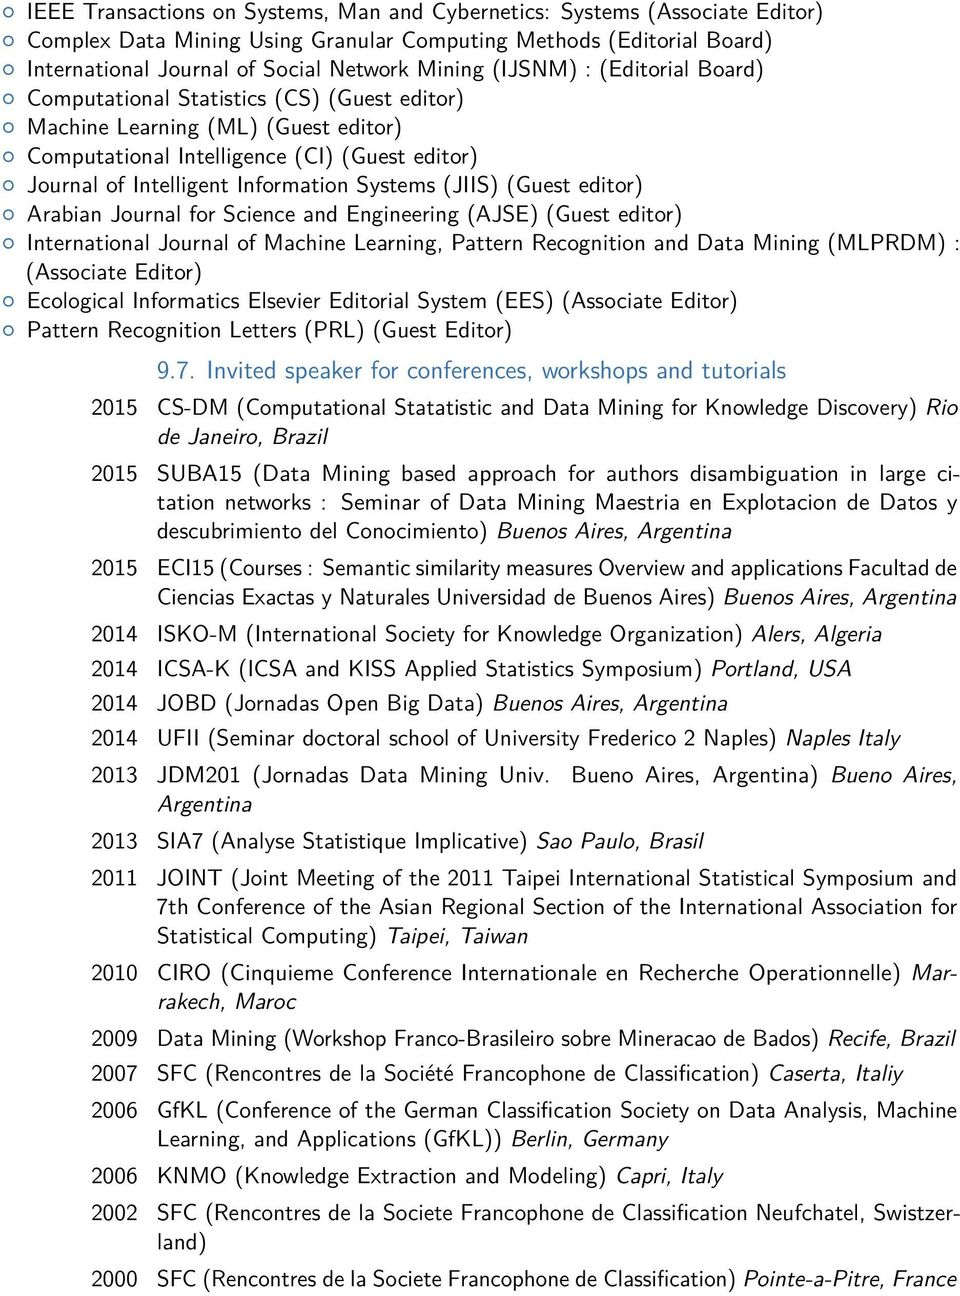 (JIIS) (Guest editor) Arabian Journal for Science and Engineering (AJSE) (Guest editor) International Journal of Machine Learning, Pattern Recognition and Data Mining (MLPRDM) : (Associate Editor)